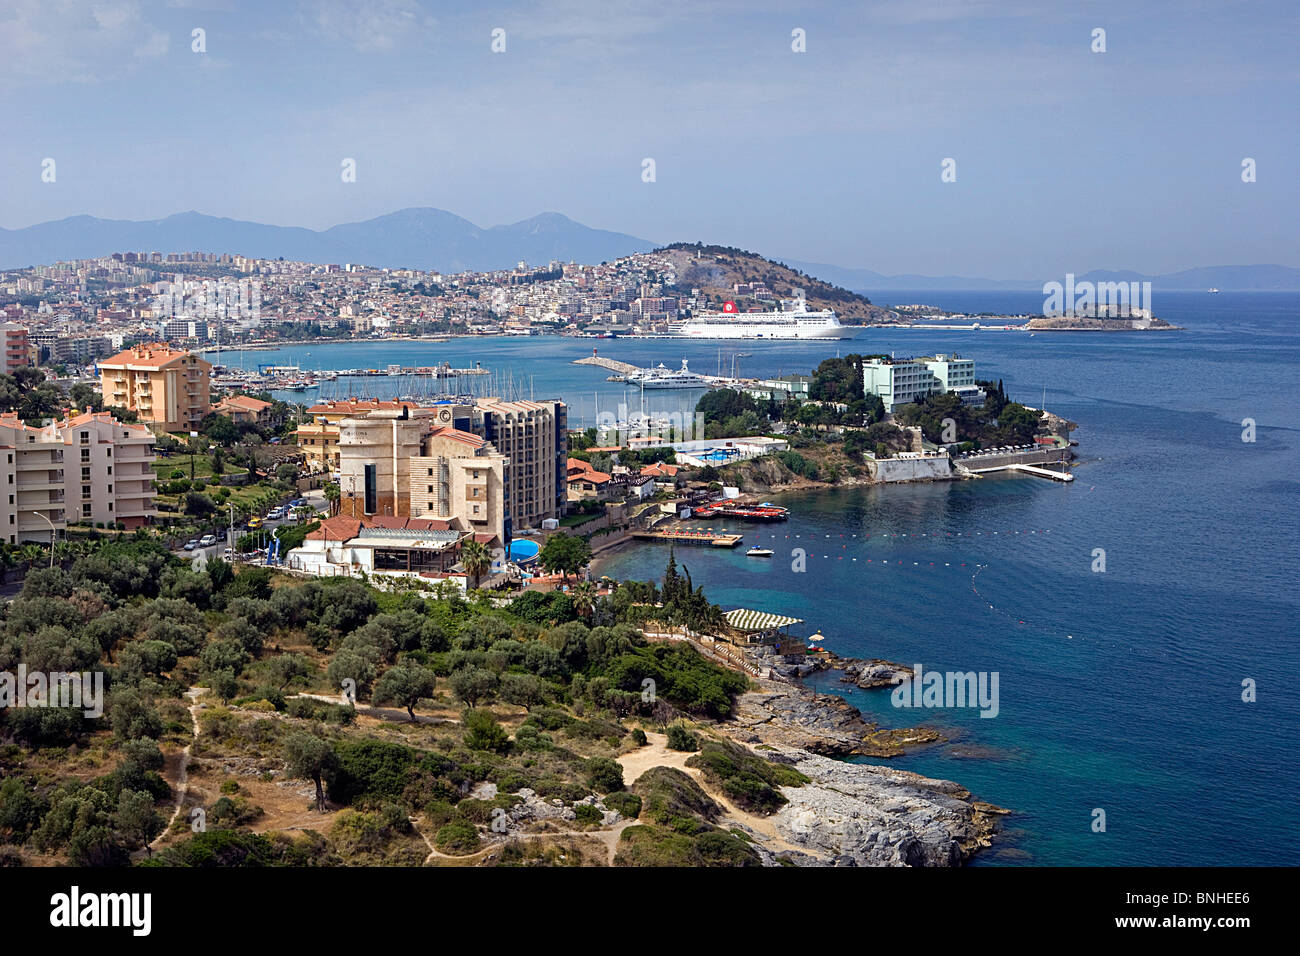 Turkey June 2008 Kusadasi city Mediterranean Sea coast - Stock Image